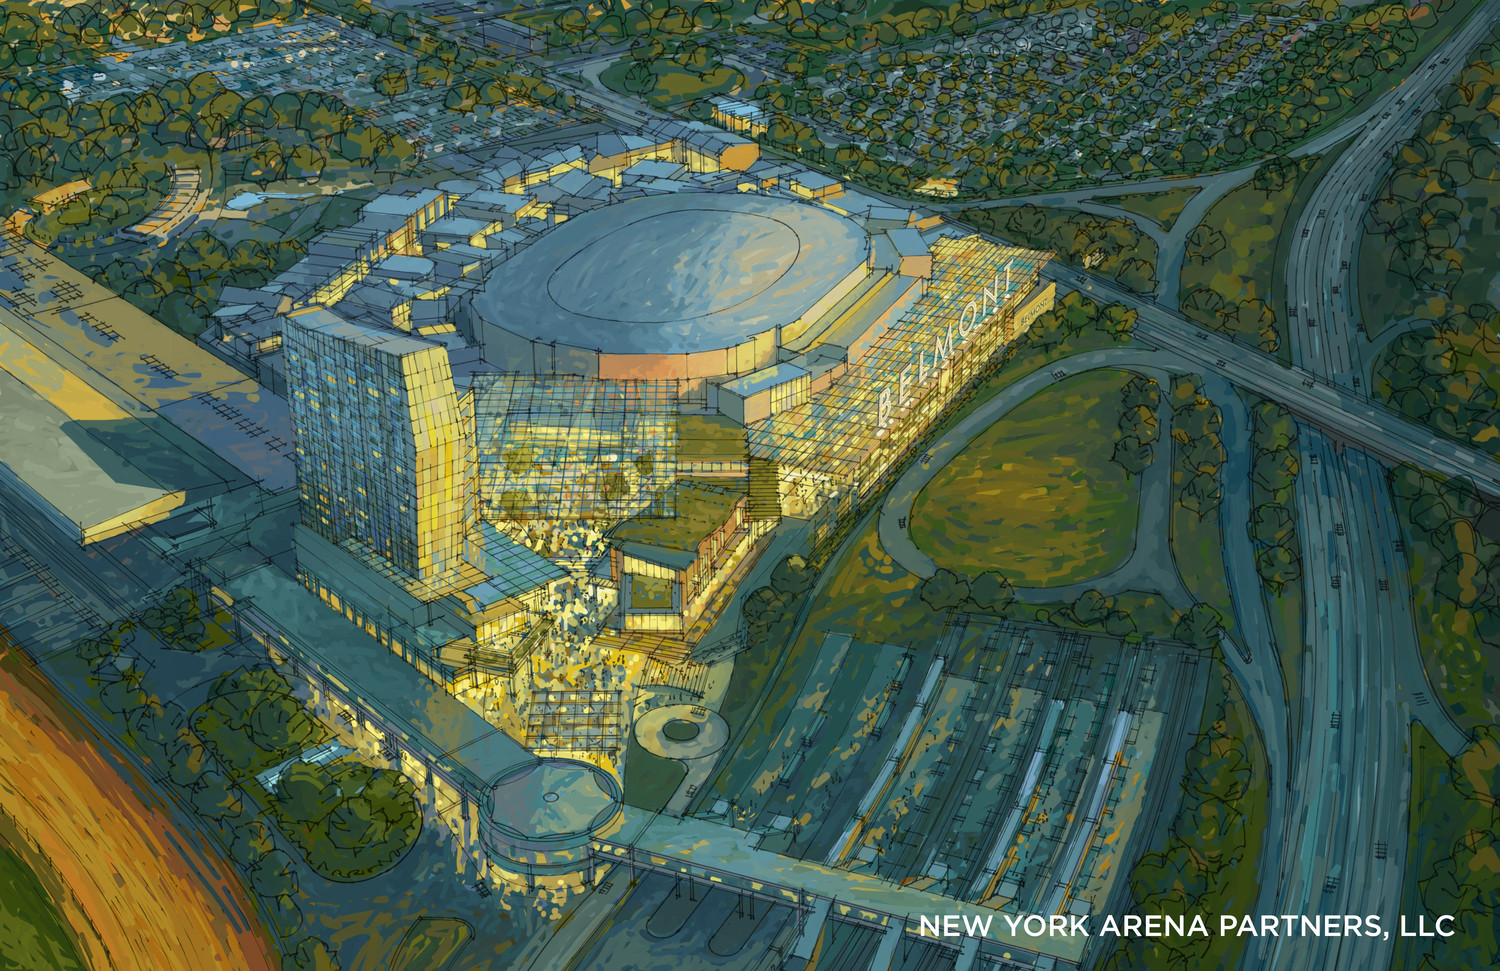 An Artist's rendition of proposed Islanders stadium.